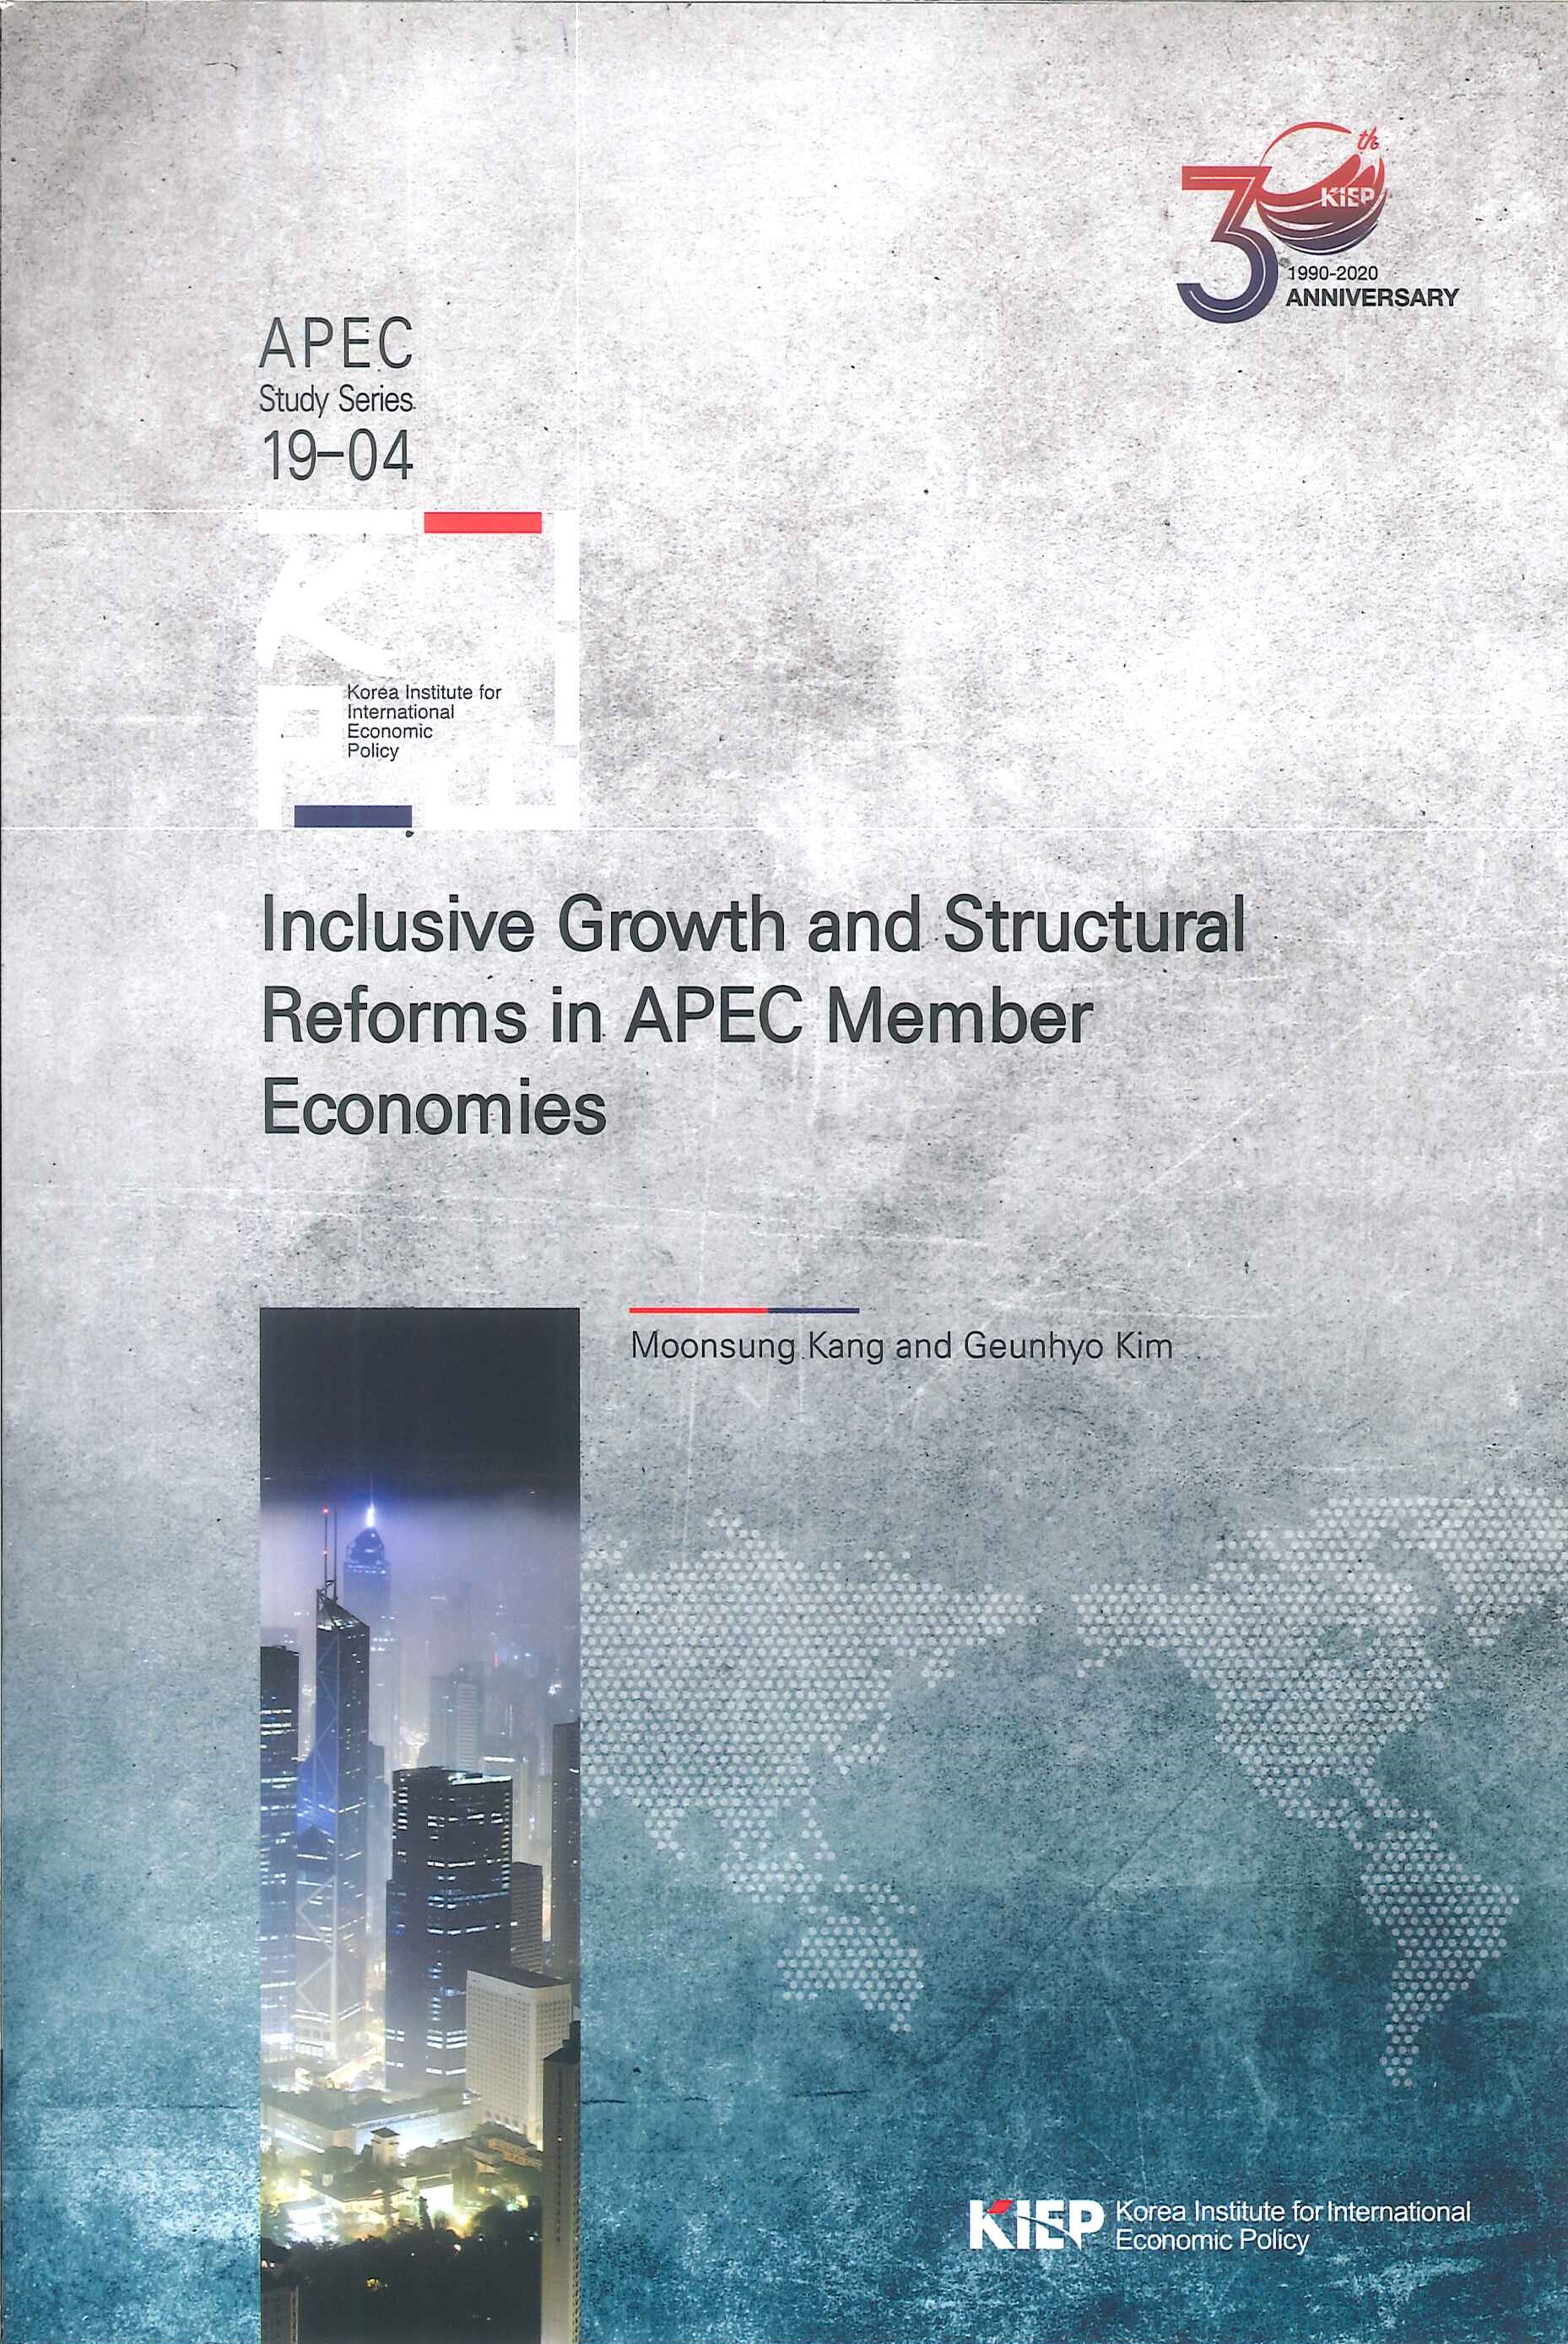 Inclusive growth and structural reforms in APEC member economies